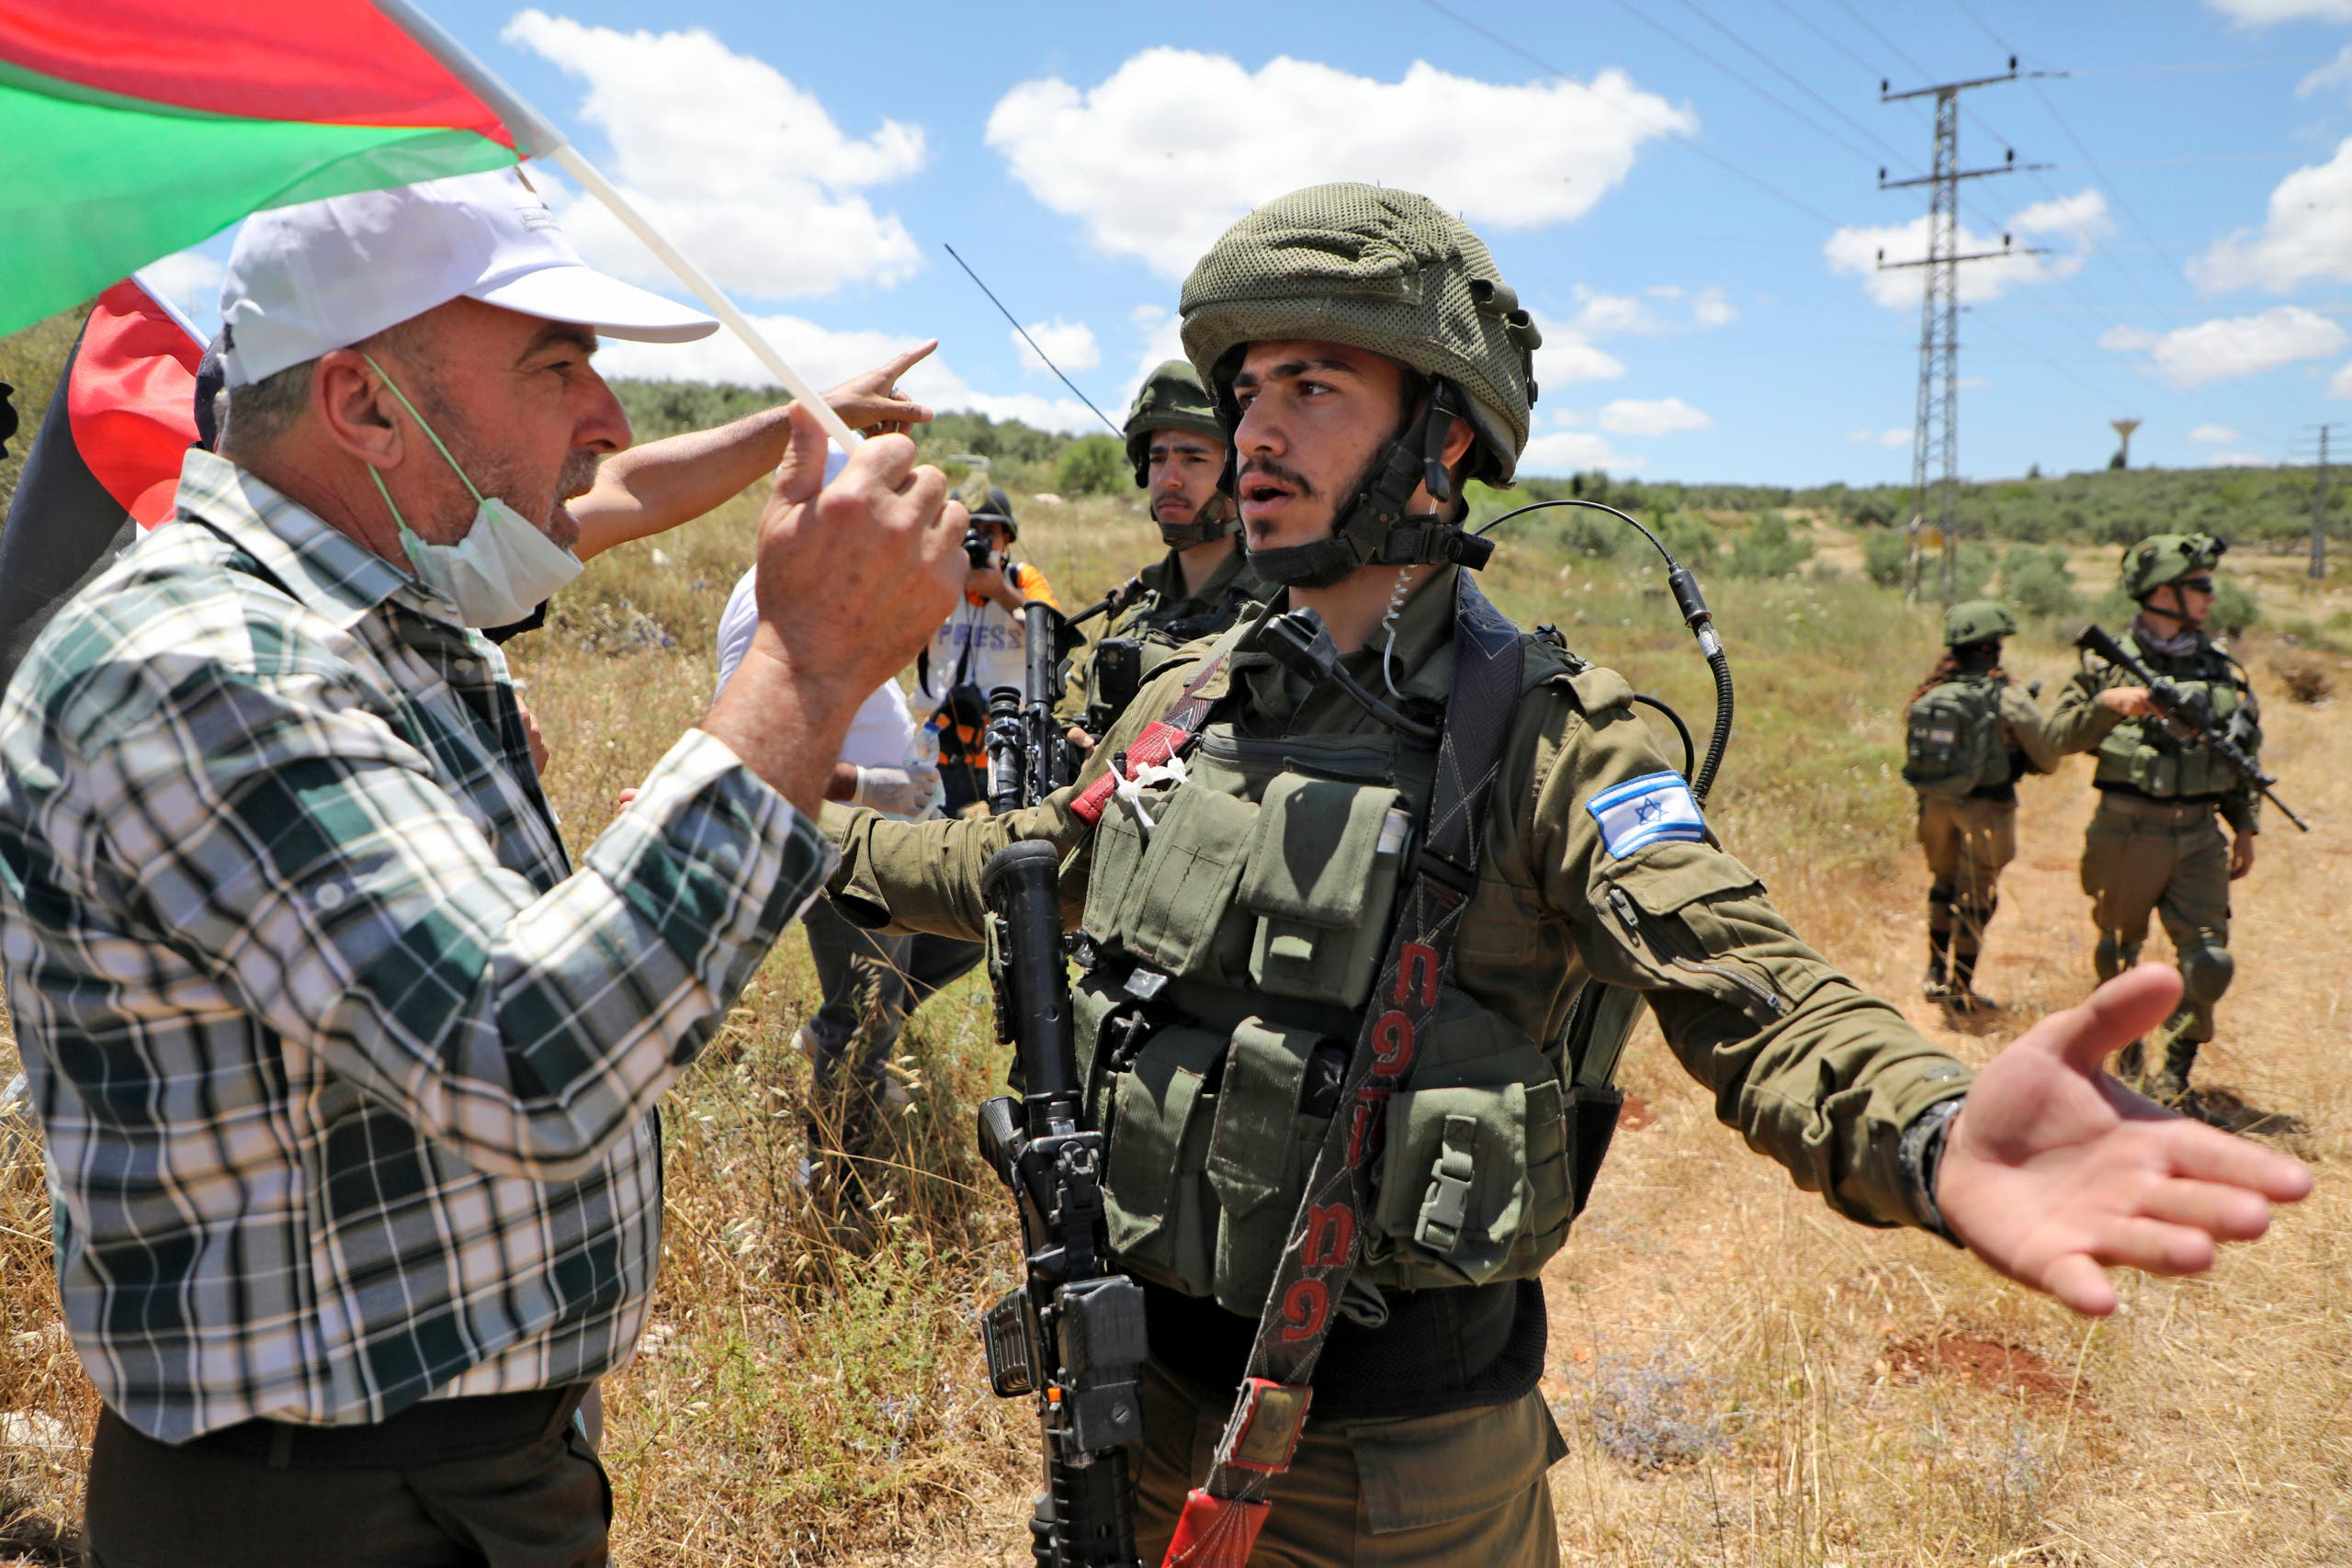 Palestinian protesters from the village of Haris in the occupied West Bank argue with Israeli soldiers, on May 29, 2020, during a protest against the expropriation of Palestinian land in favor of the Israeli settlement of Revava. (AFP)